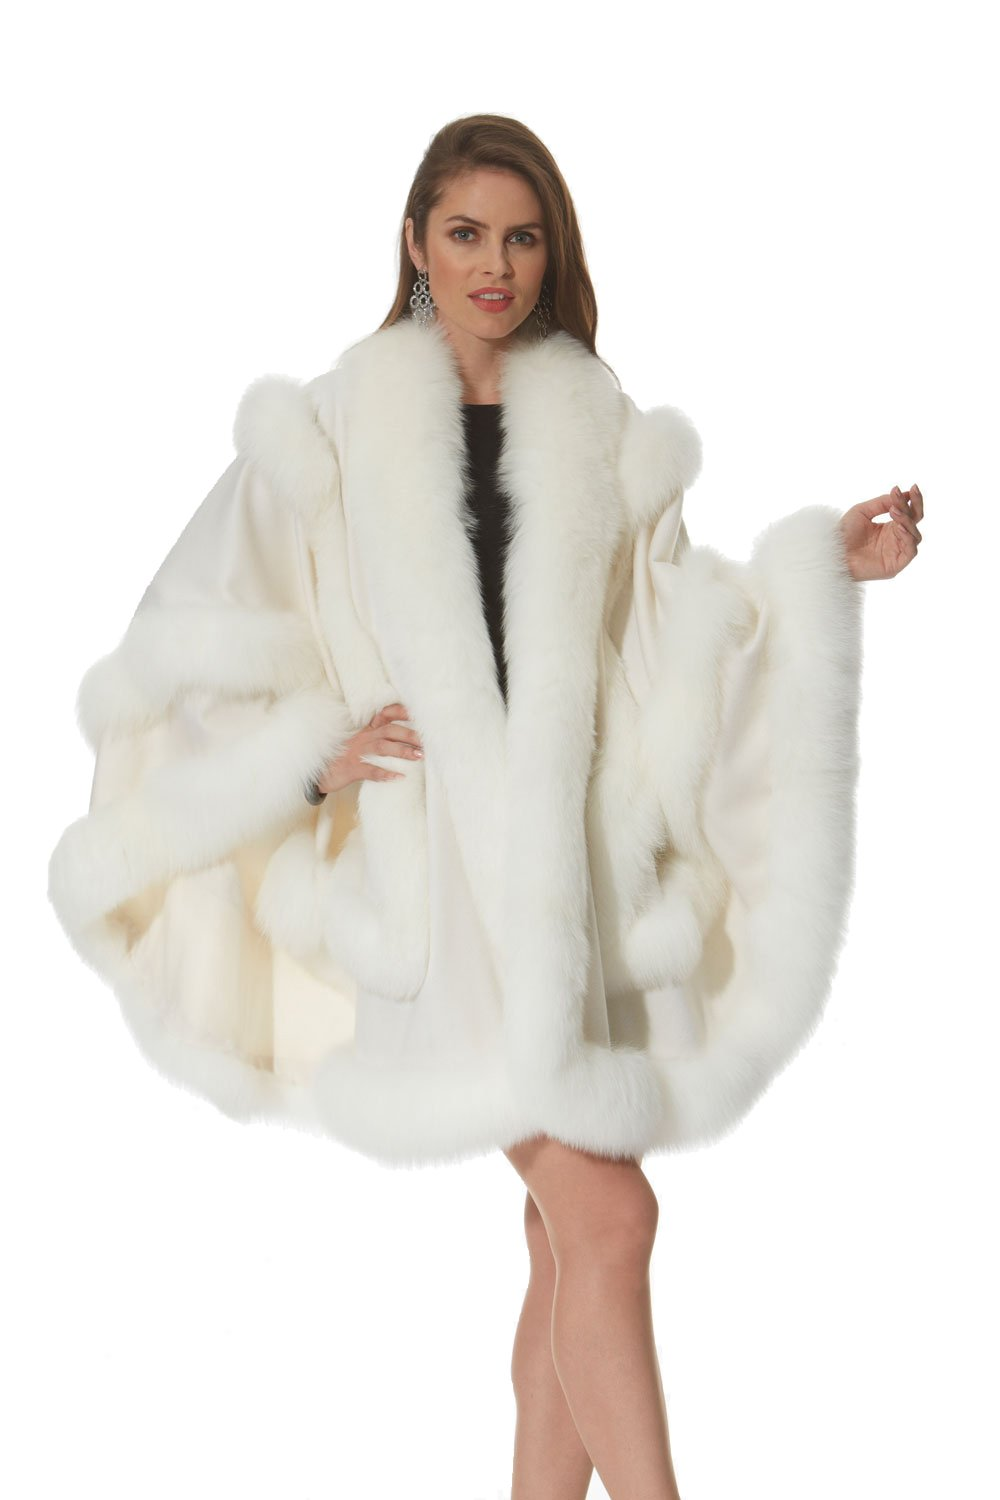 Madison Avenue Mall Winter White Cashmere Cape for Women Fox Trim Empress Style by Madison Avenue Mall